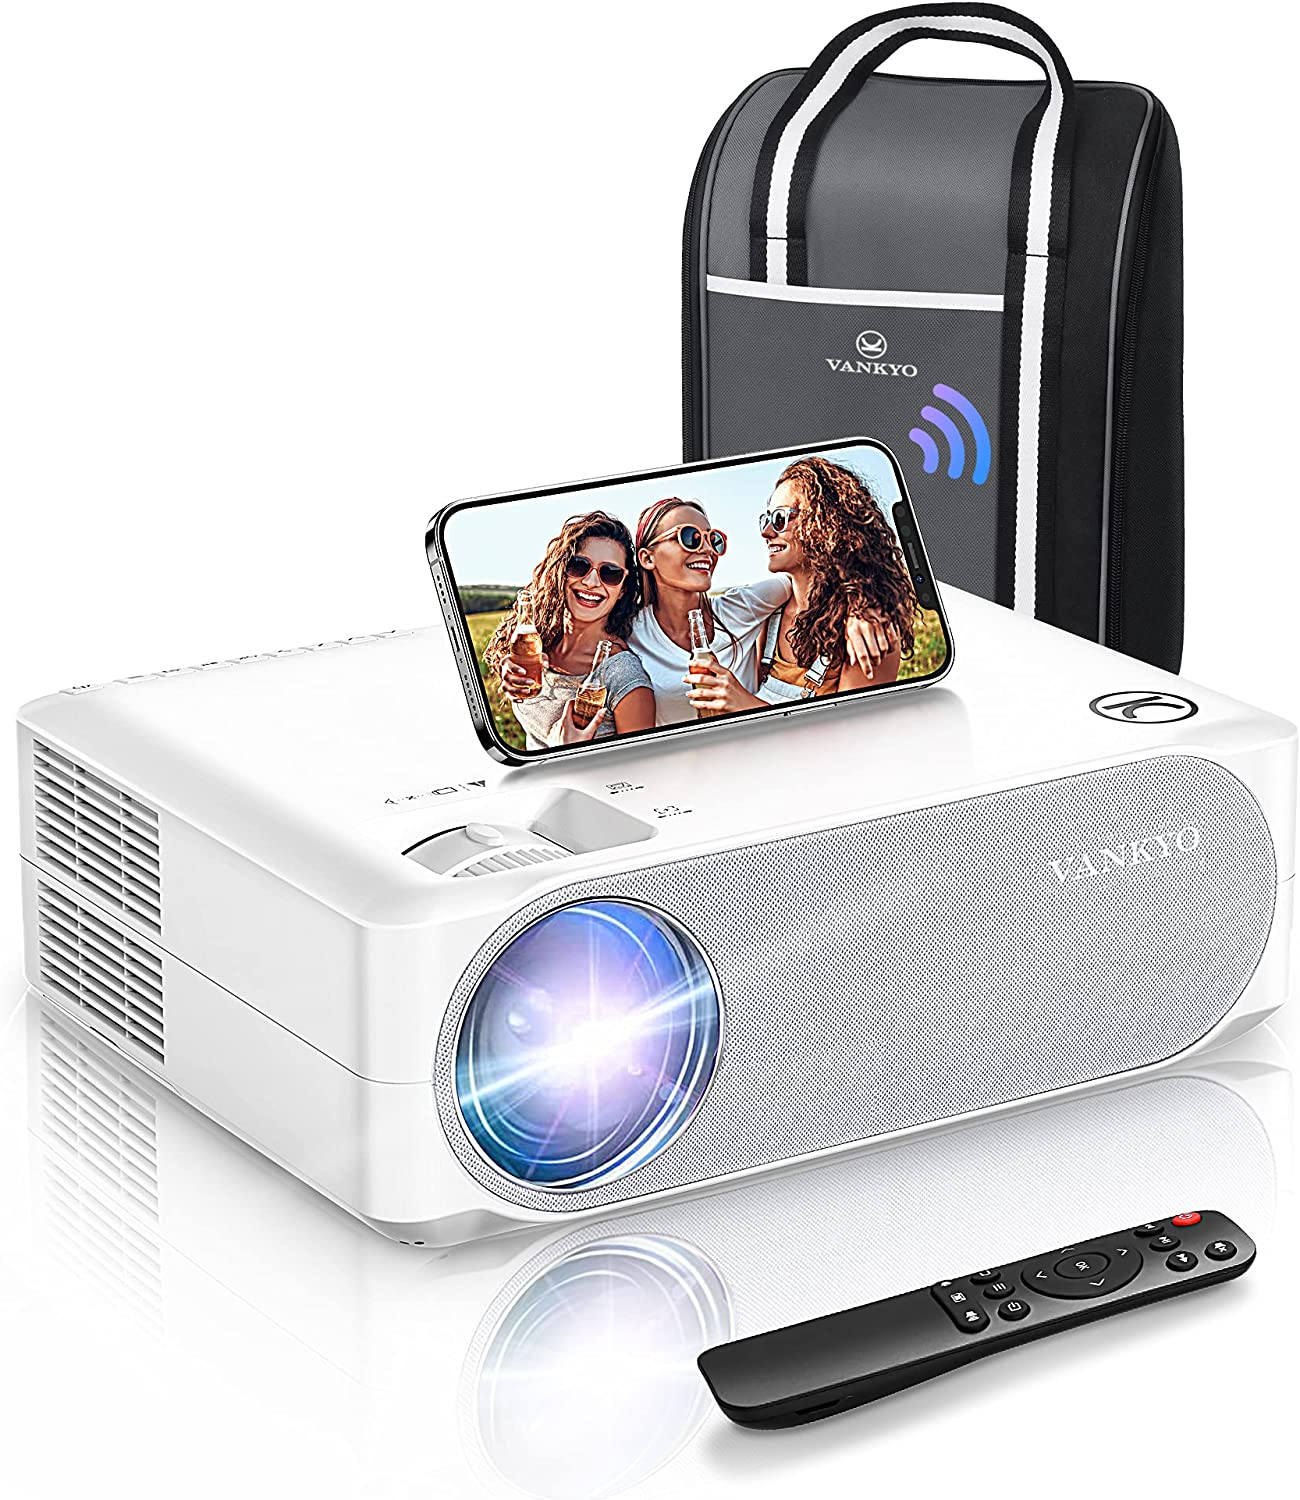 VANKYO 2021 Upgraded 5G WiFi Video Projector, HD Home Projector w/ 1080P 300